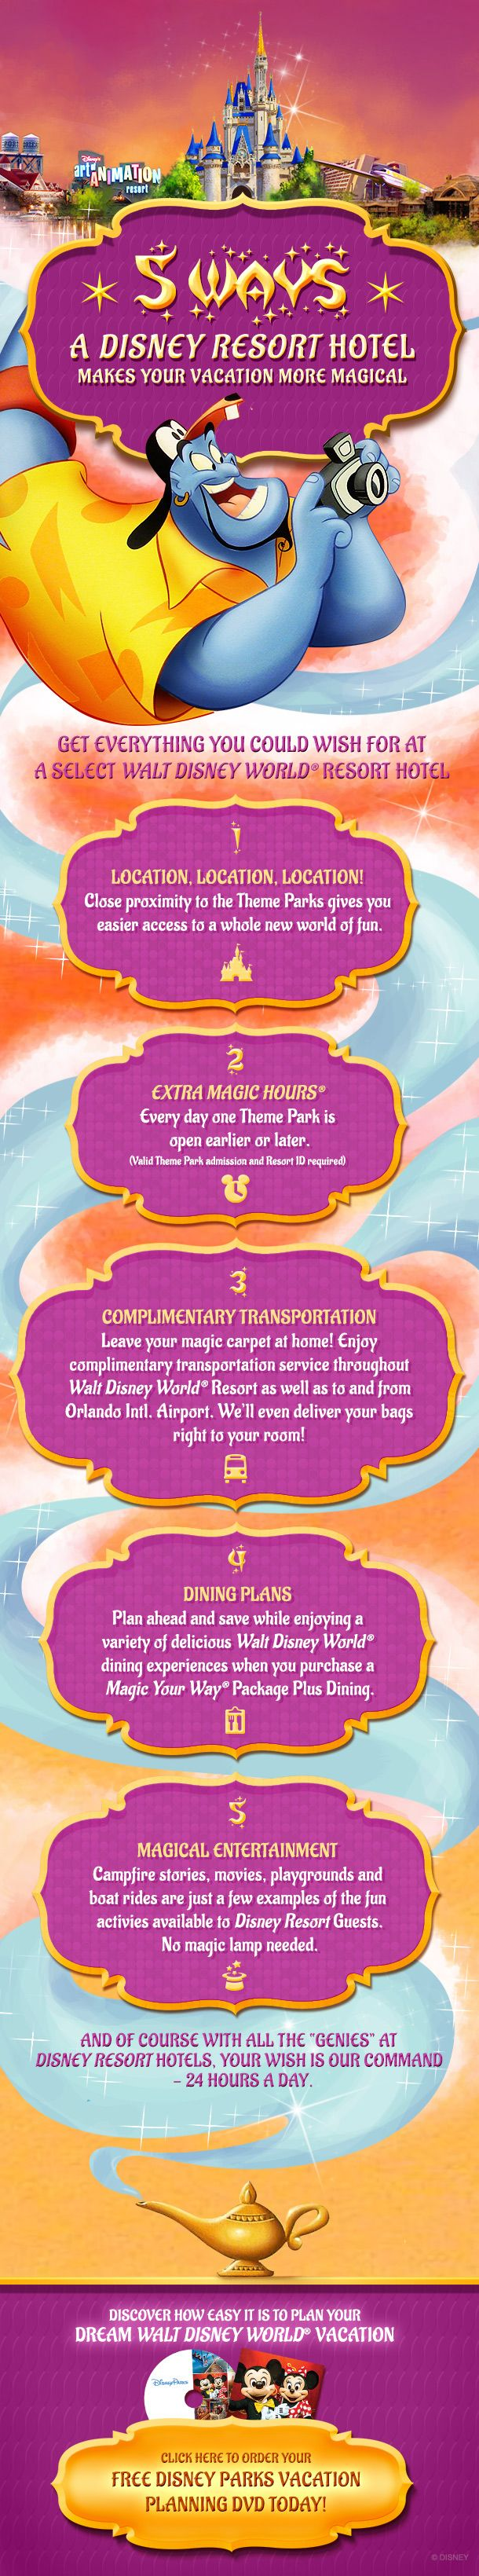 5 Ways a Disney Resort Hotel makes your vacation more Magical! Click to order your FREE Disney Parks Vacation Planning DVD Today! #WaltDisneyWorld #Aladdin #Genie